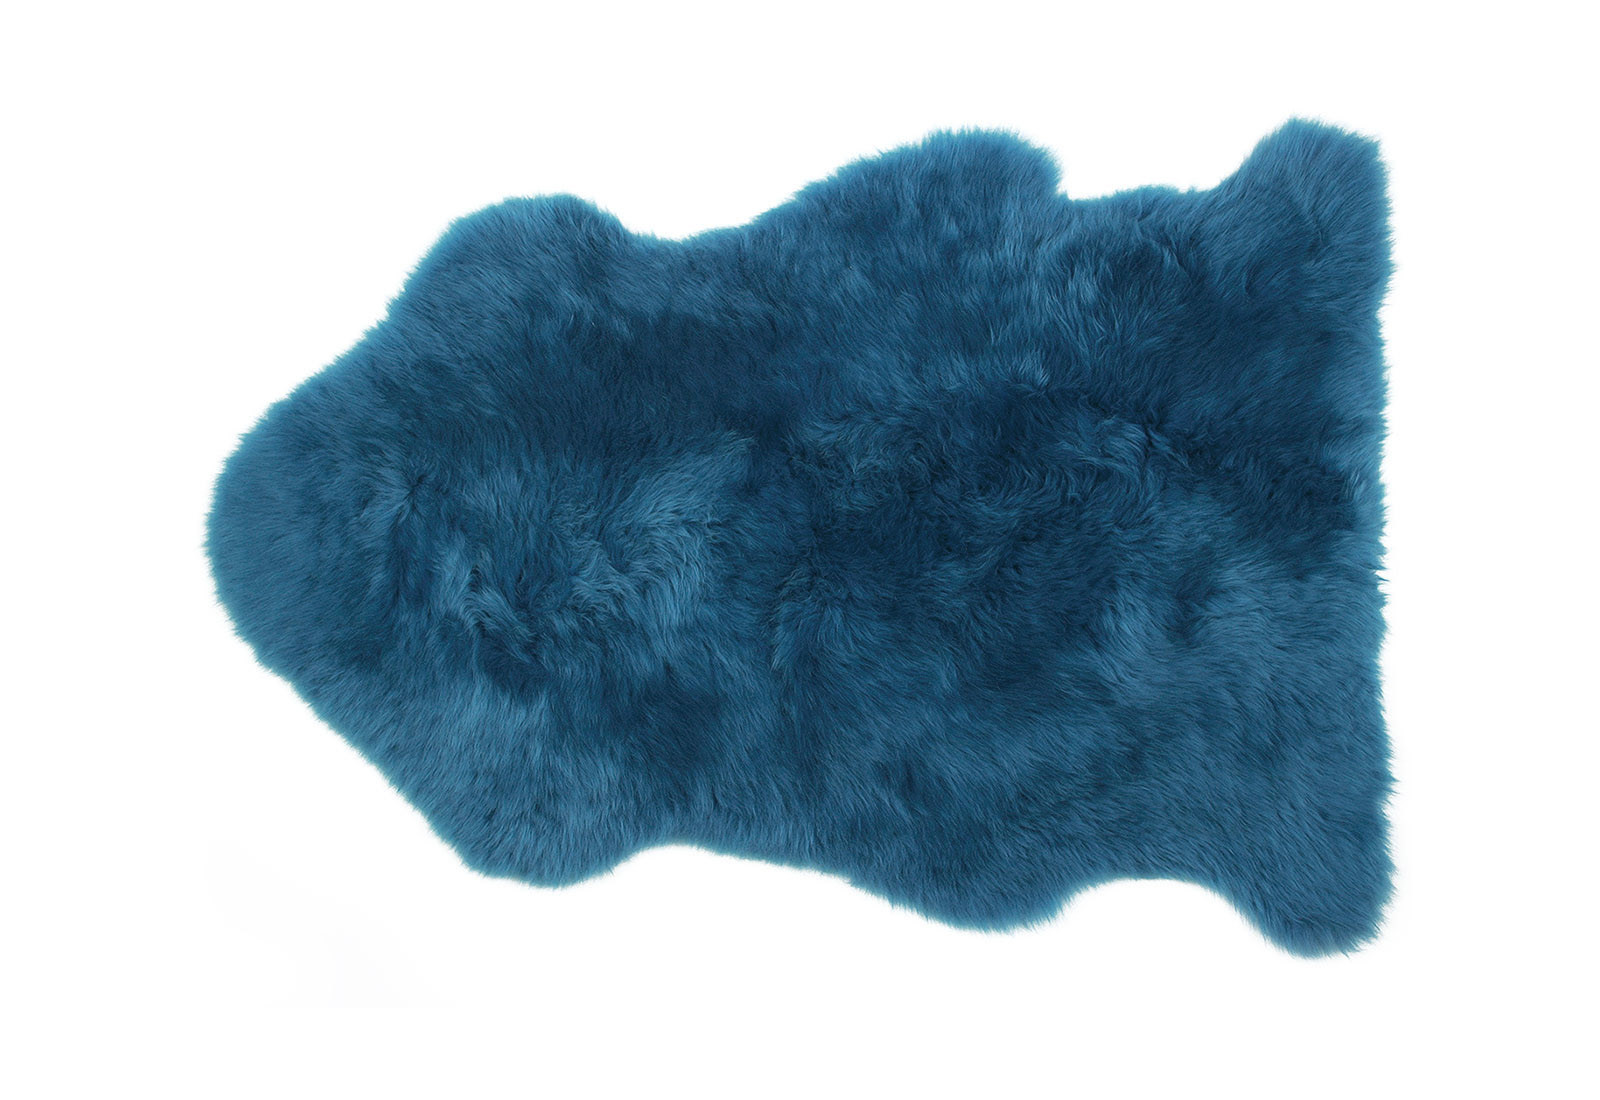 Teal Blue Sheepskin Fur Rug